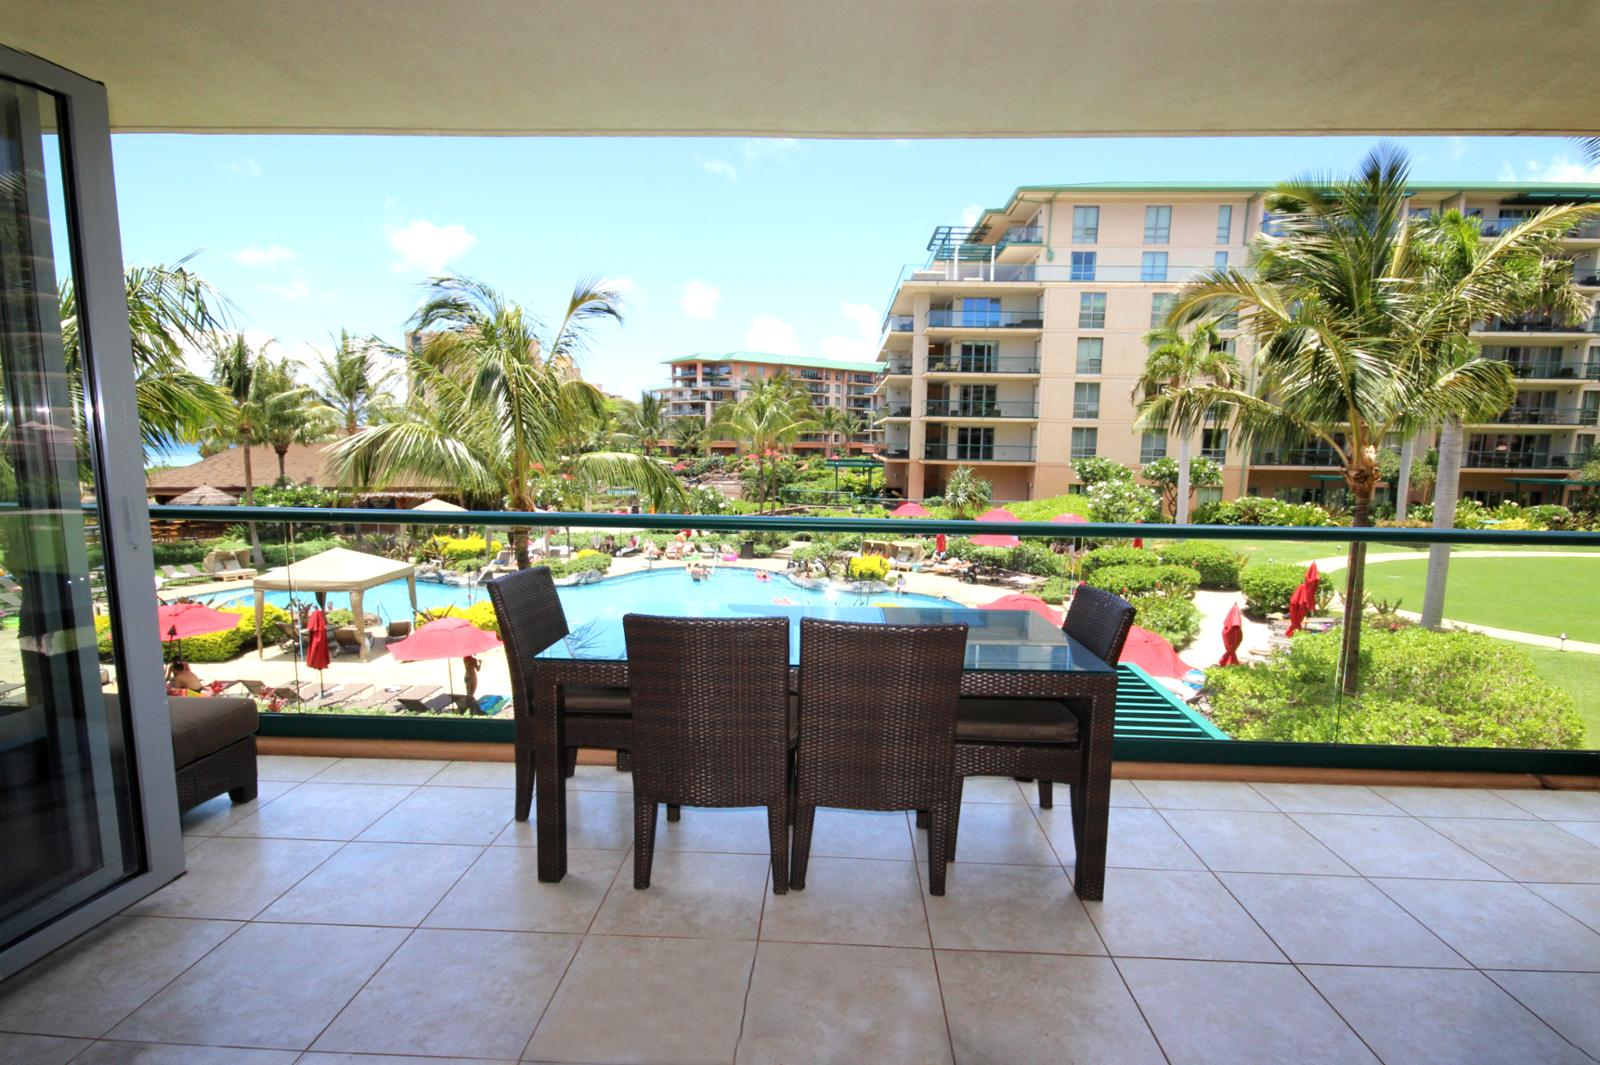 Enjoy alfresco dining on the lanai overlooking the pool and ocean